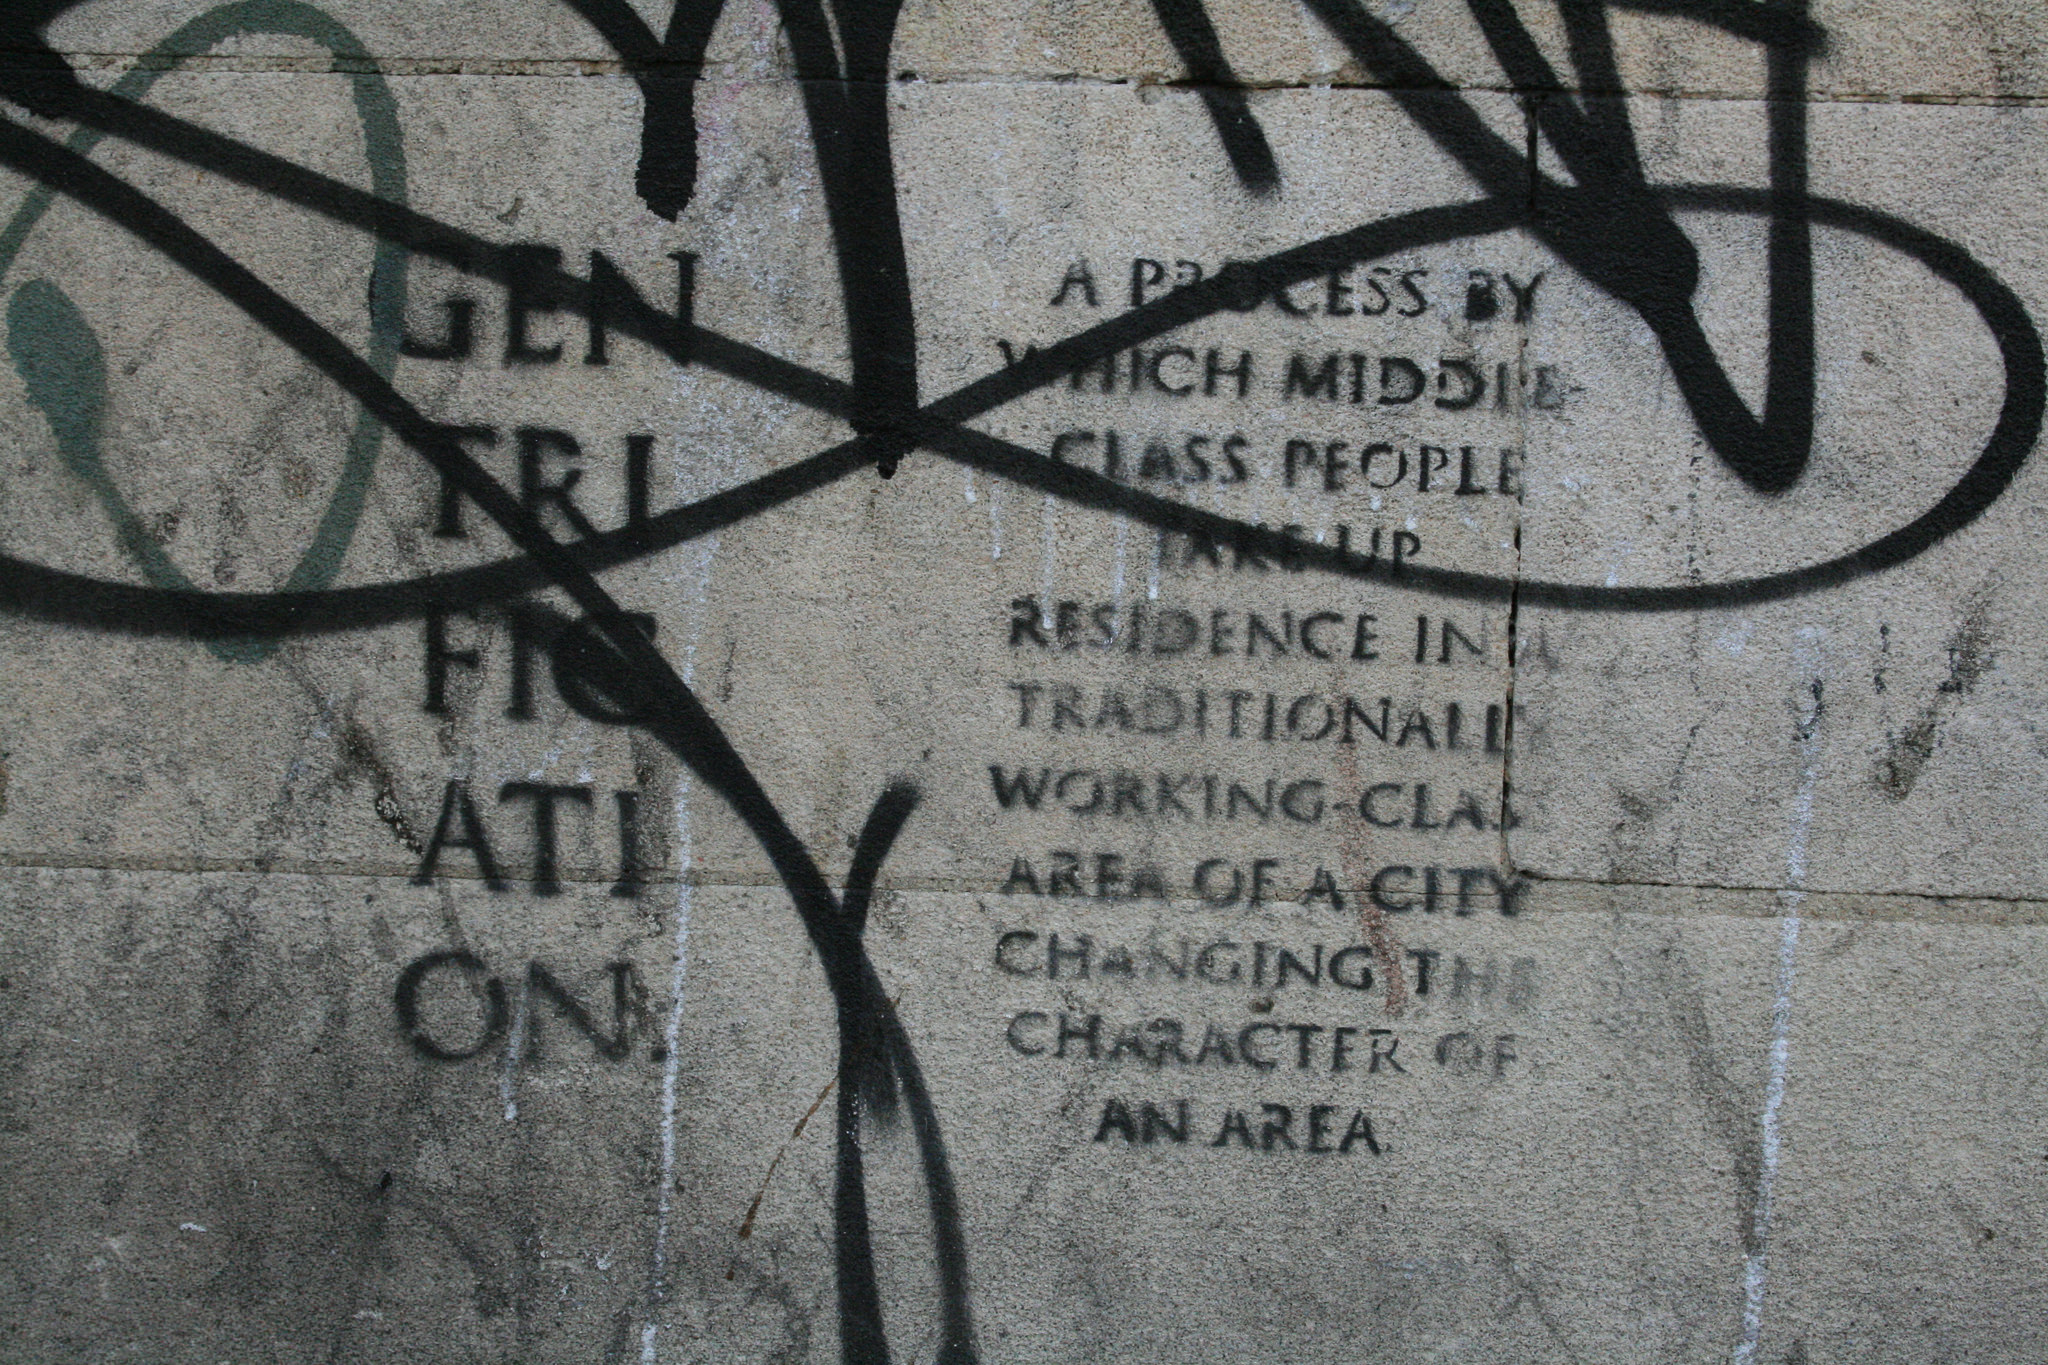 851px version of Gentrification graffiti